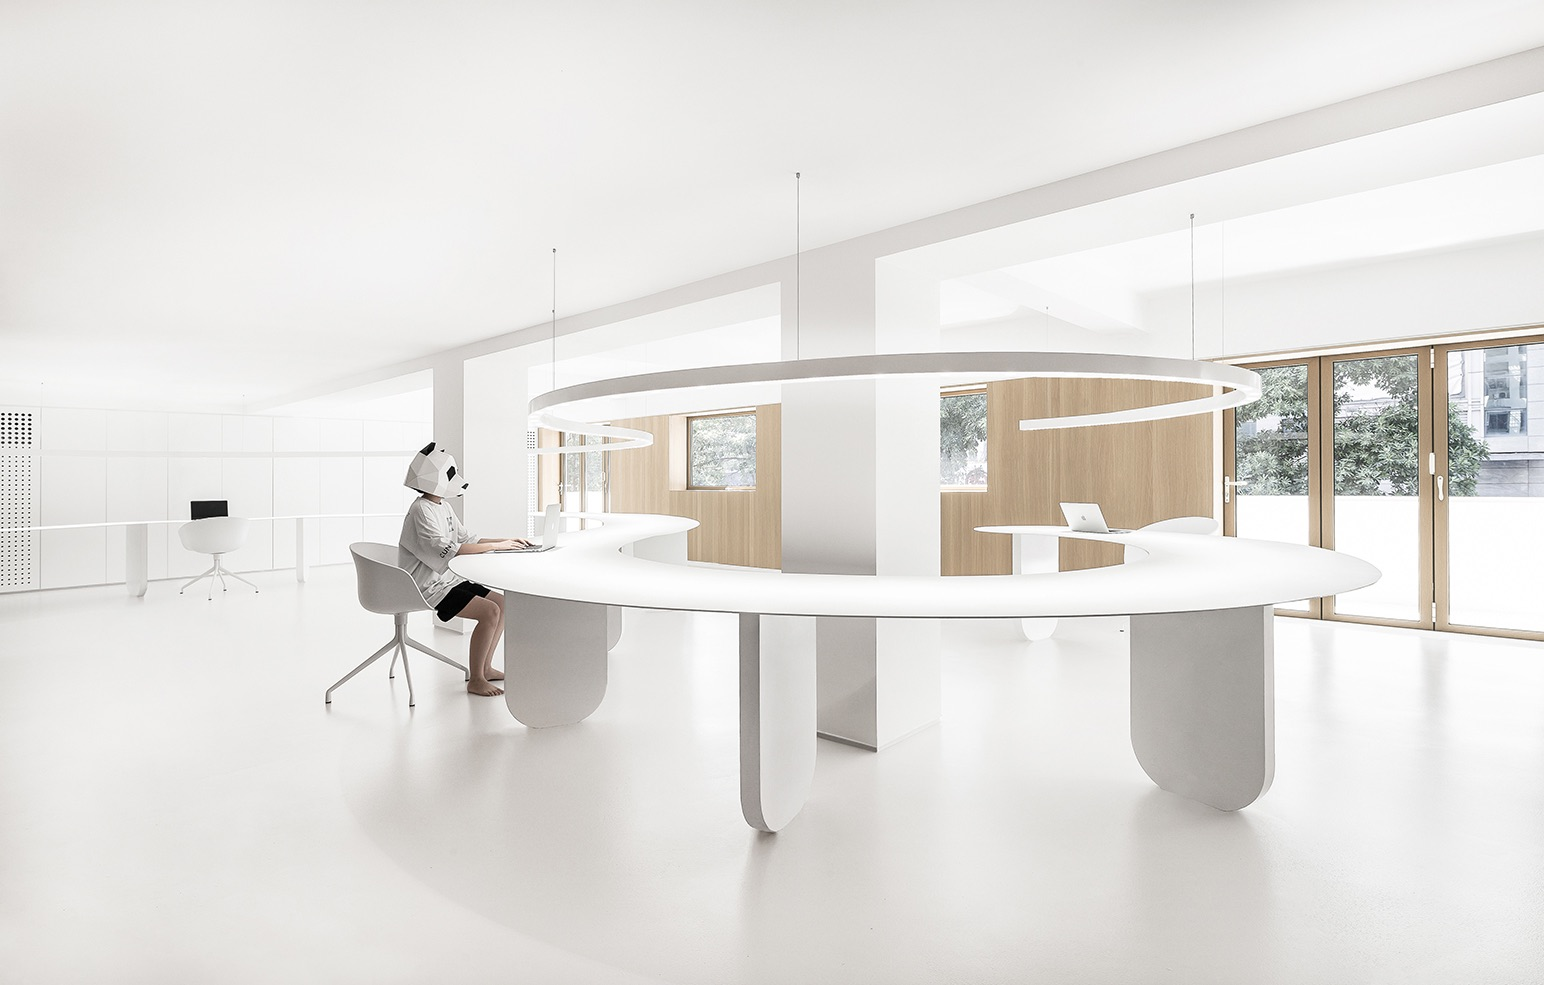 panda-design-office-xiamen-16